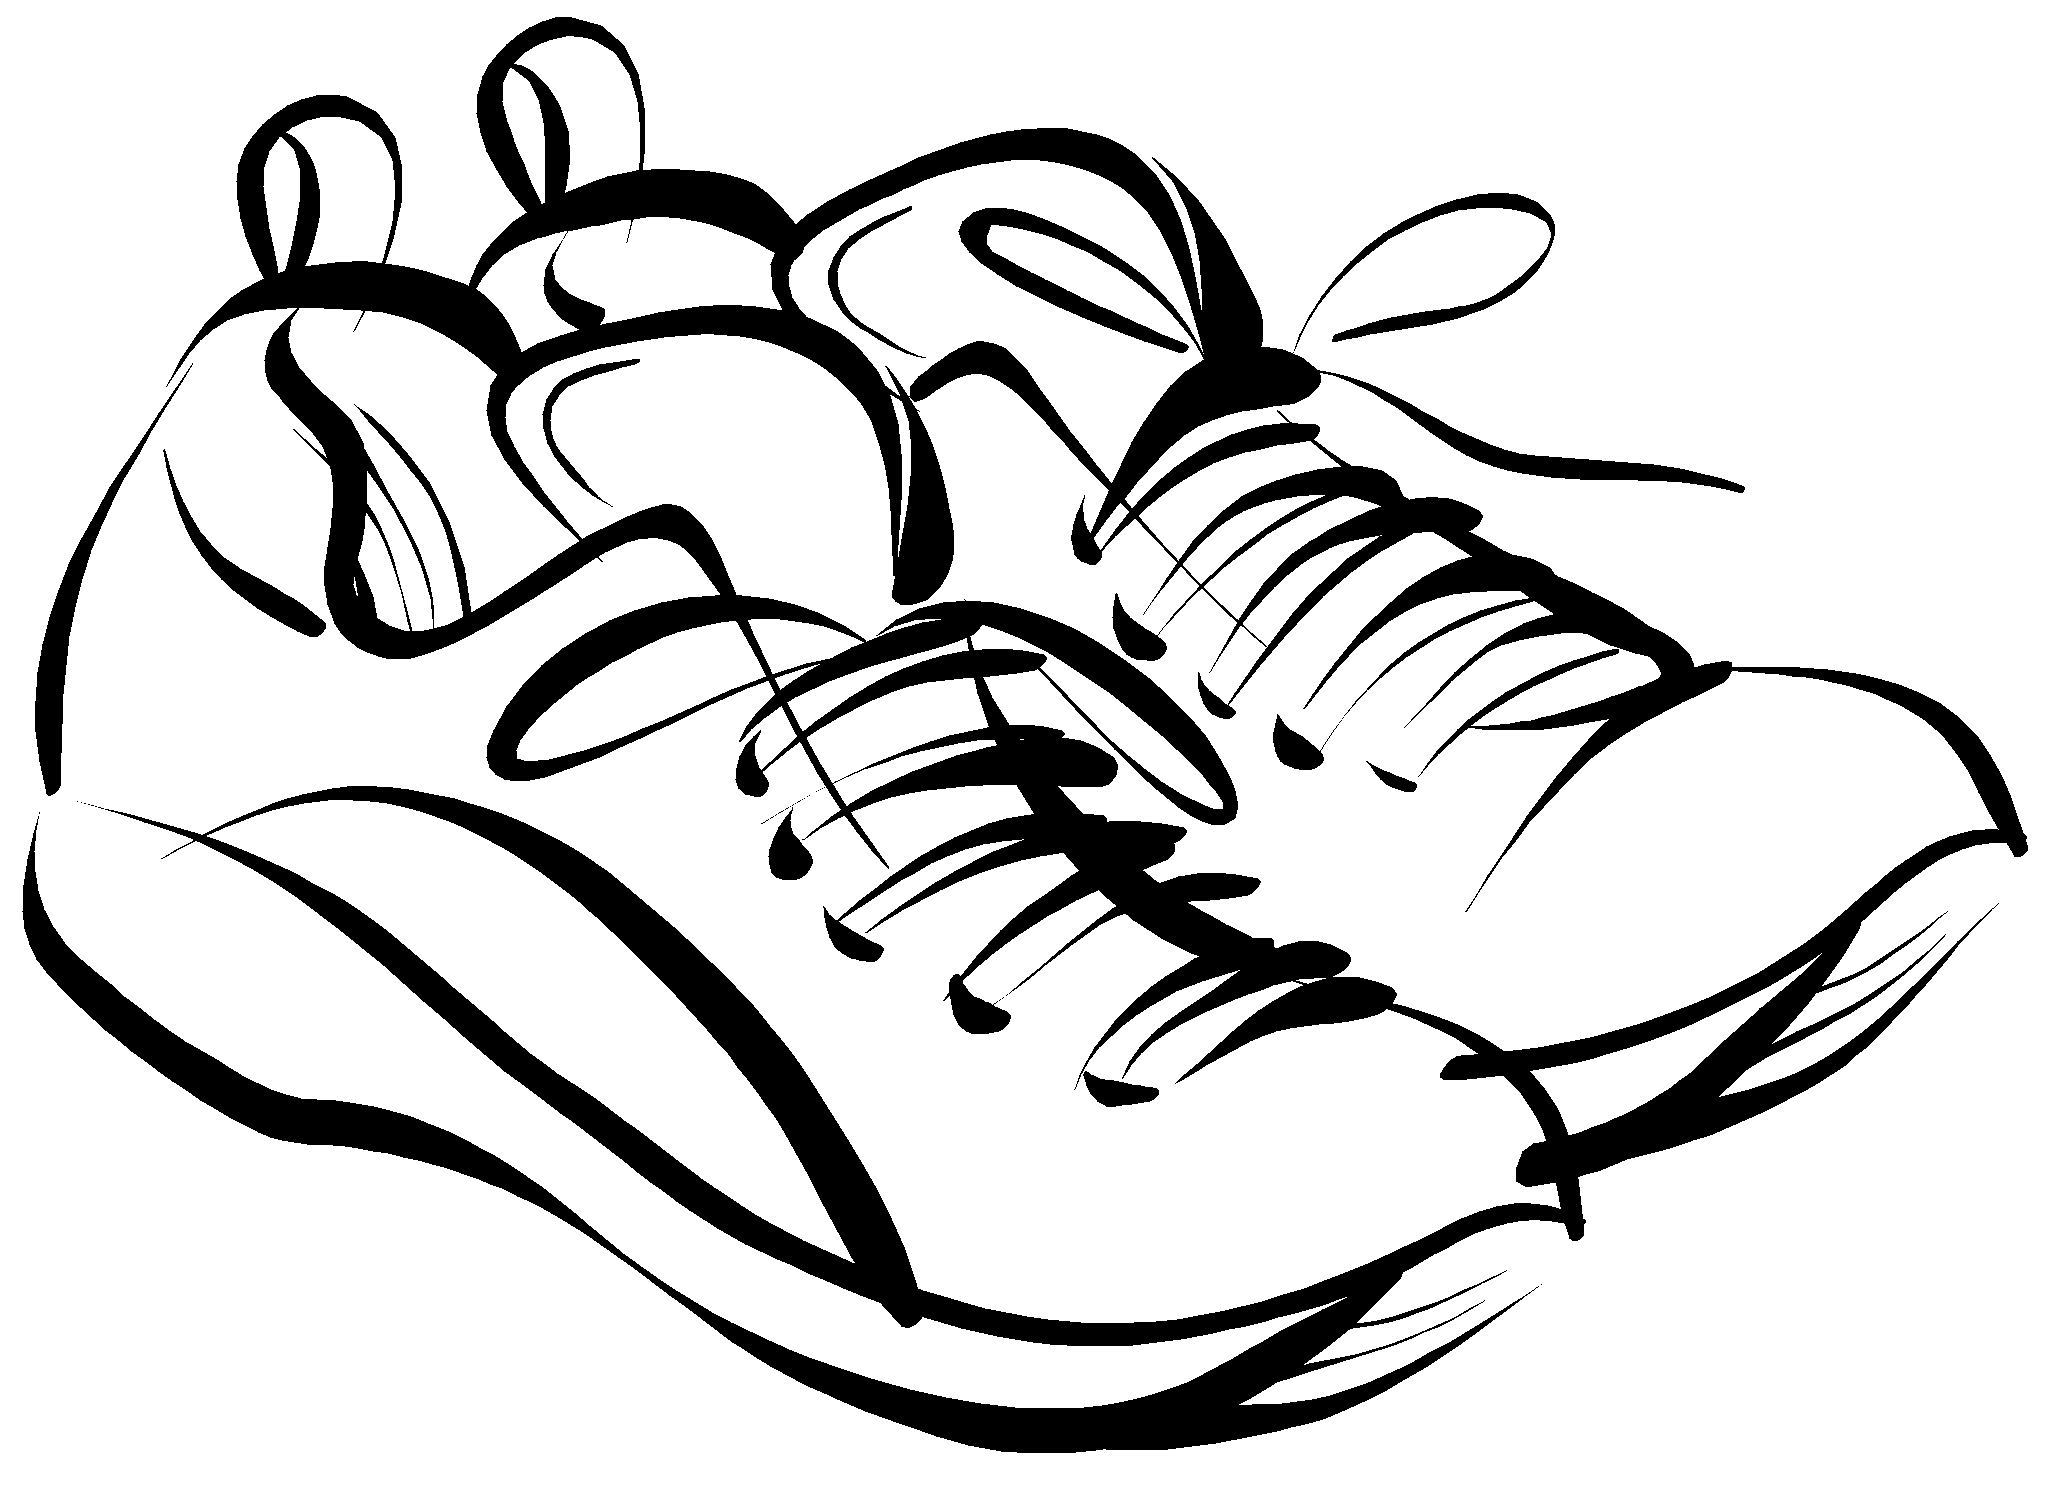 Families clipart shoe. Running shoes drawing panda